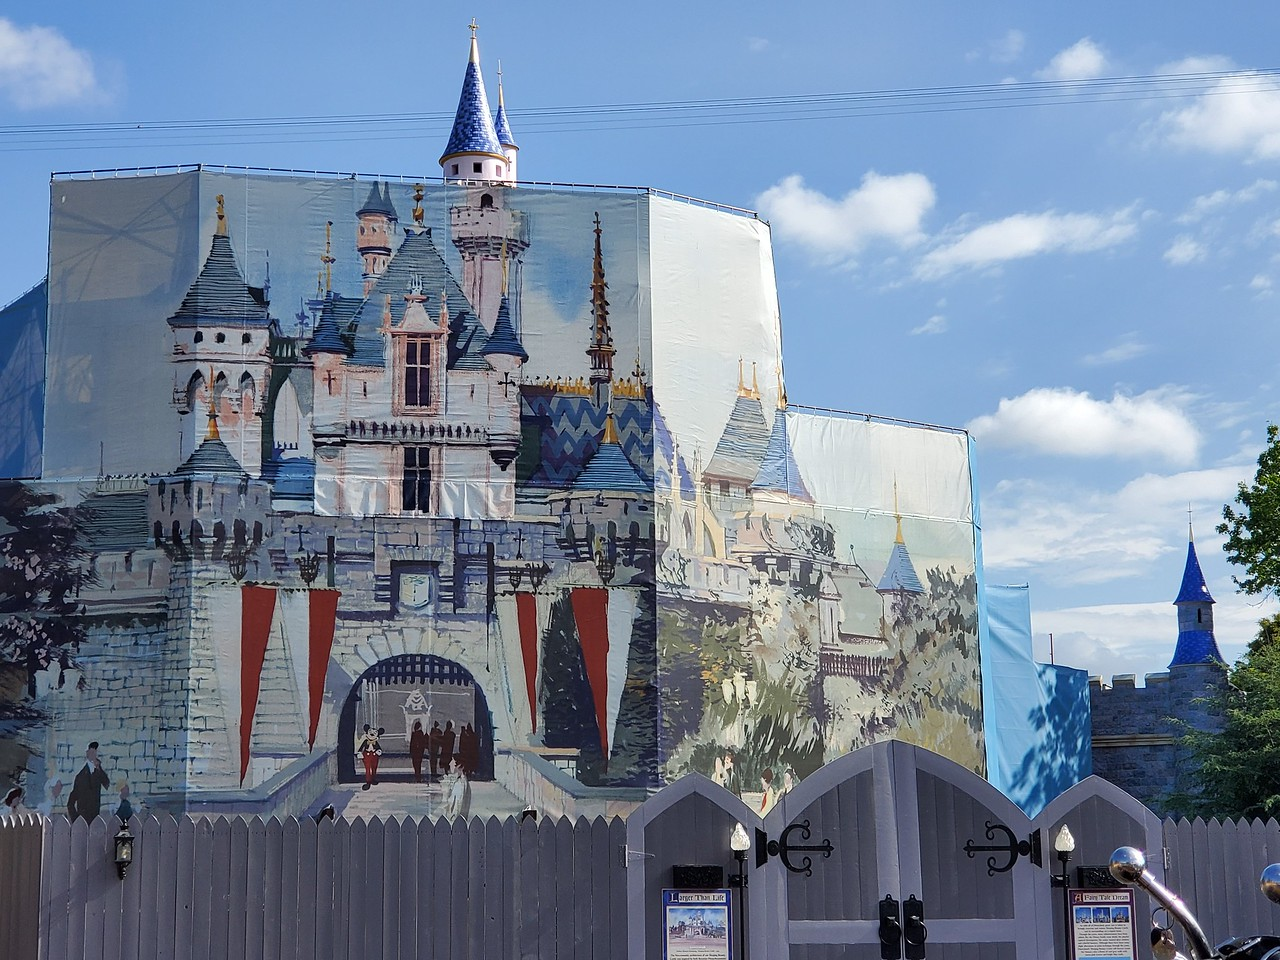 PICTORIAL: Project Stardust, Star Wars, Rinse and more keep the Happiest Place on Earth a buzz